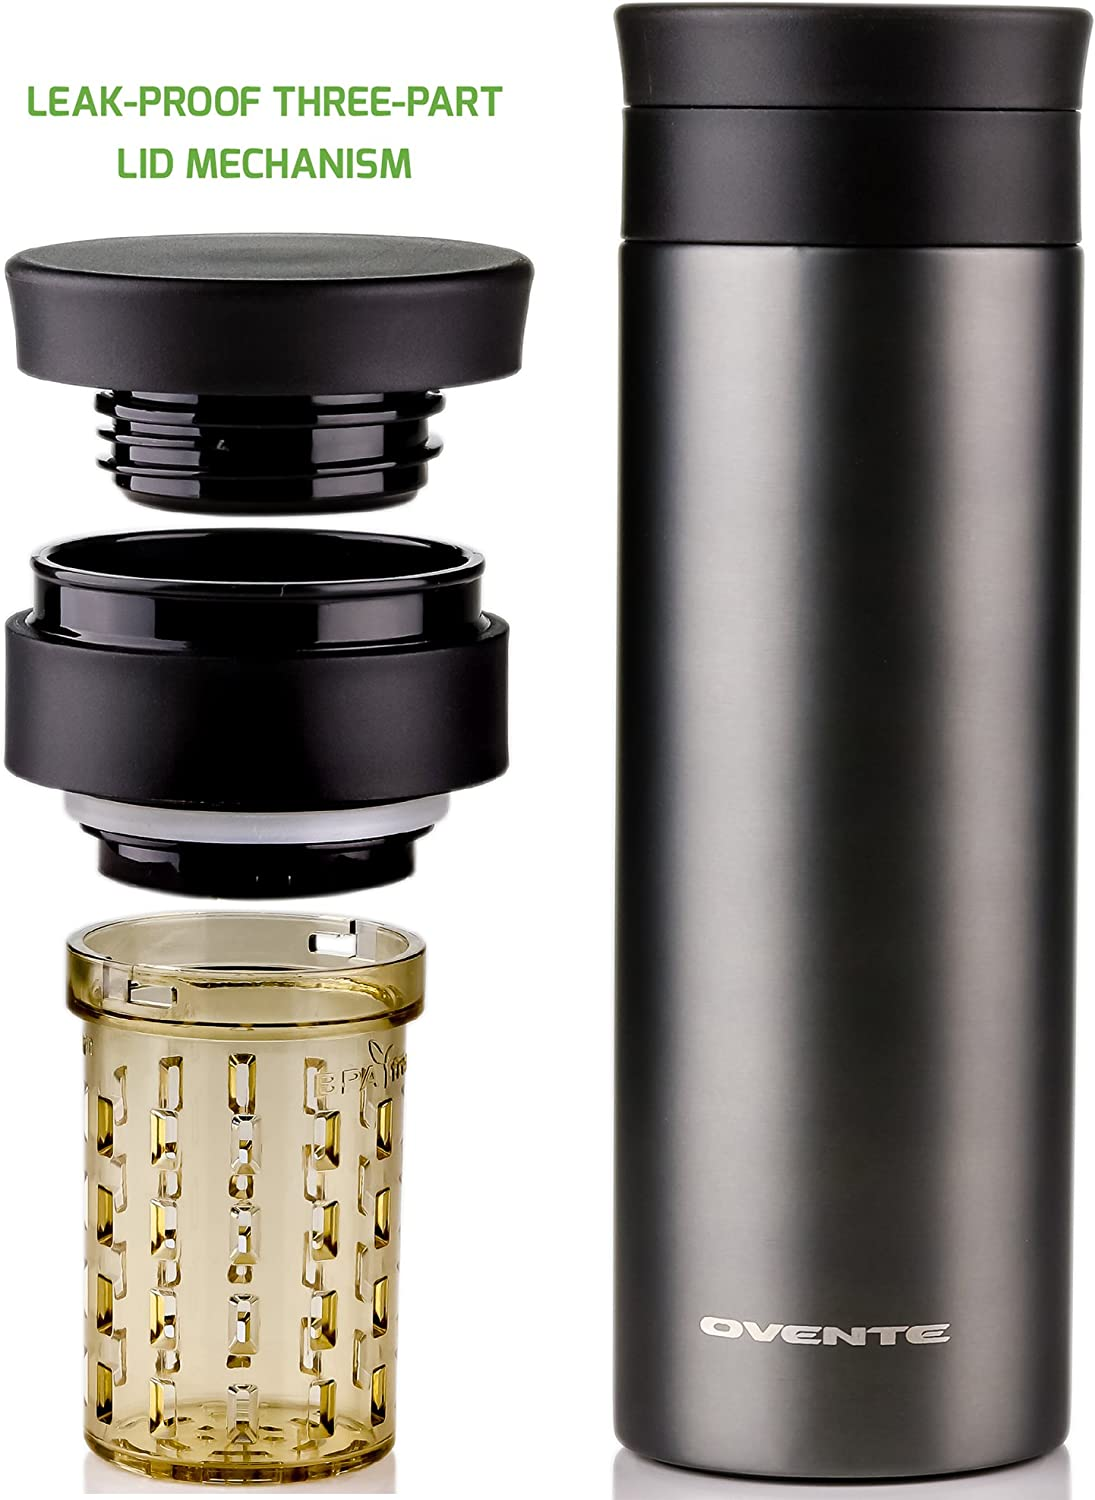 OVENTE Travel Tea Infuser, Vacuum Insulated & Double-Walled Coffee Mug, Spill-Proof, BPA-Free, 16oz, Gun Metal (MSA16G), 16 oz